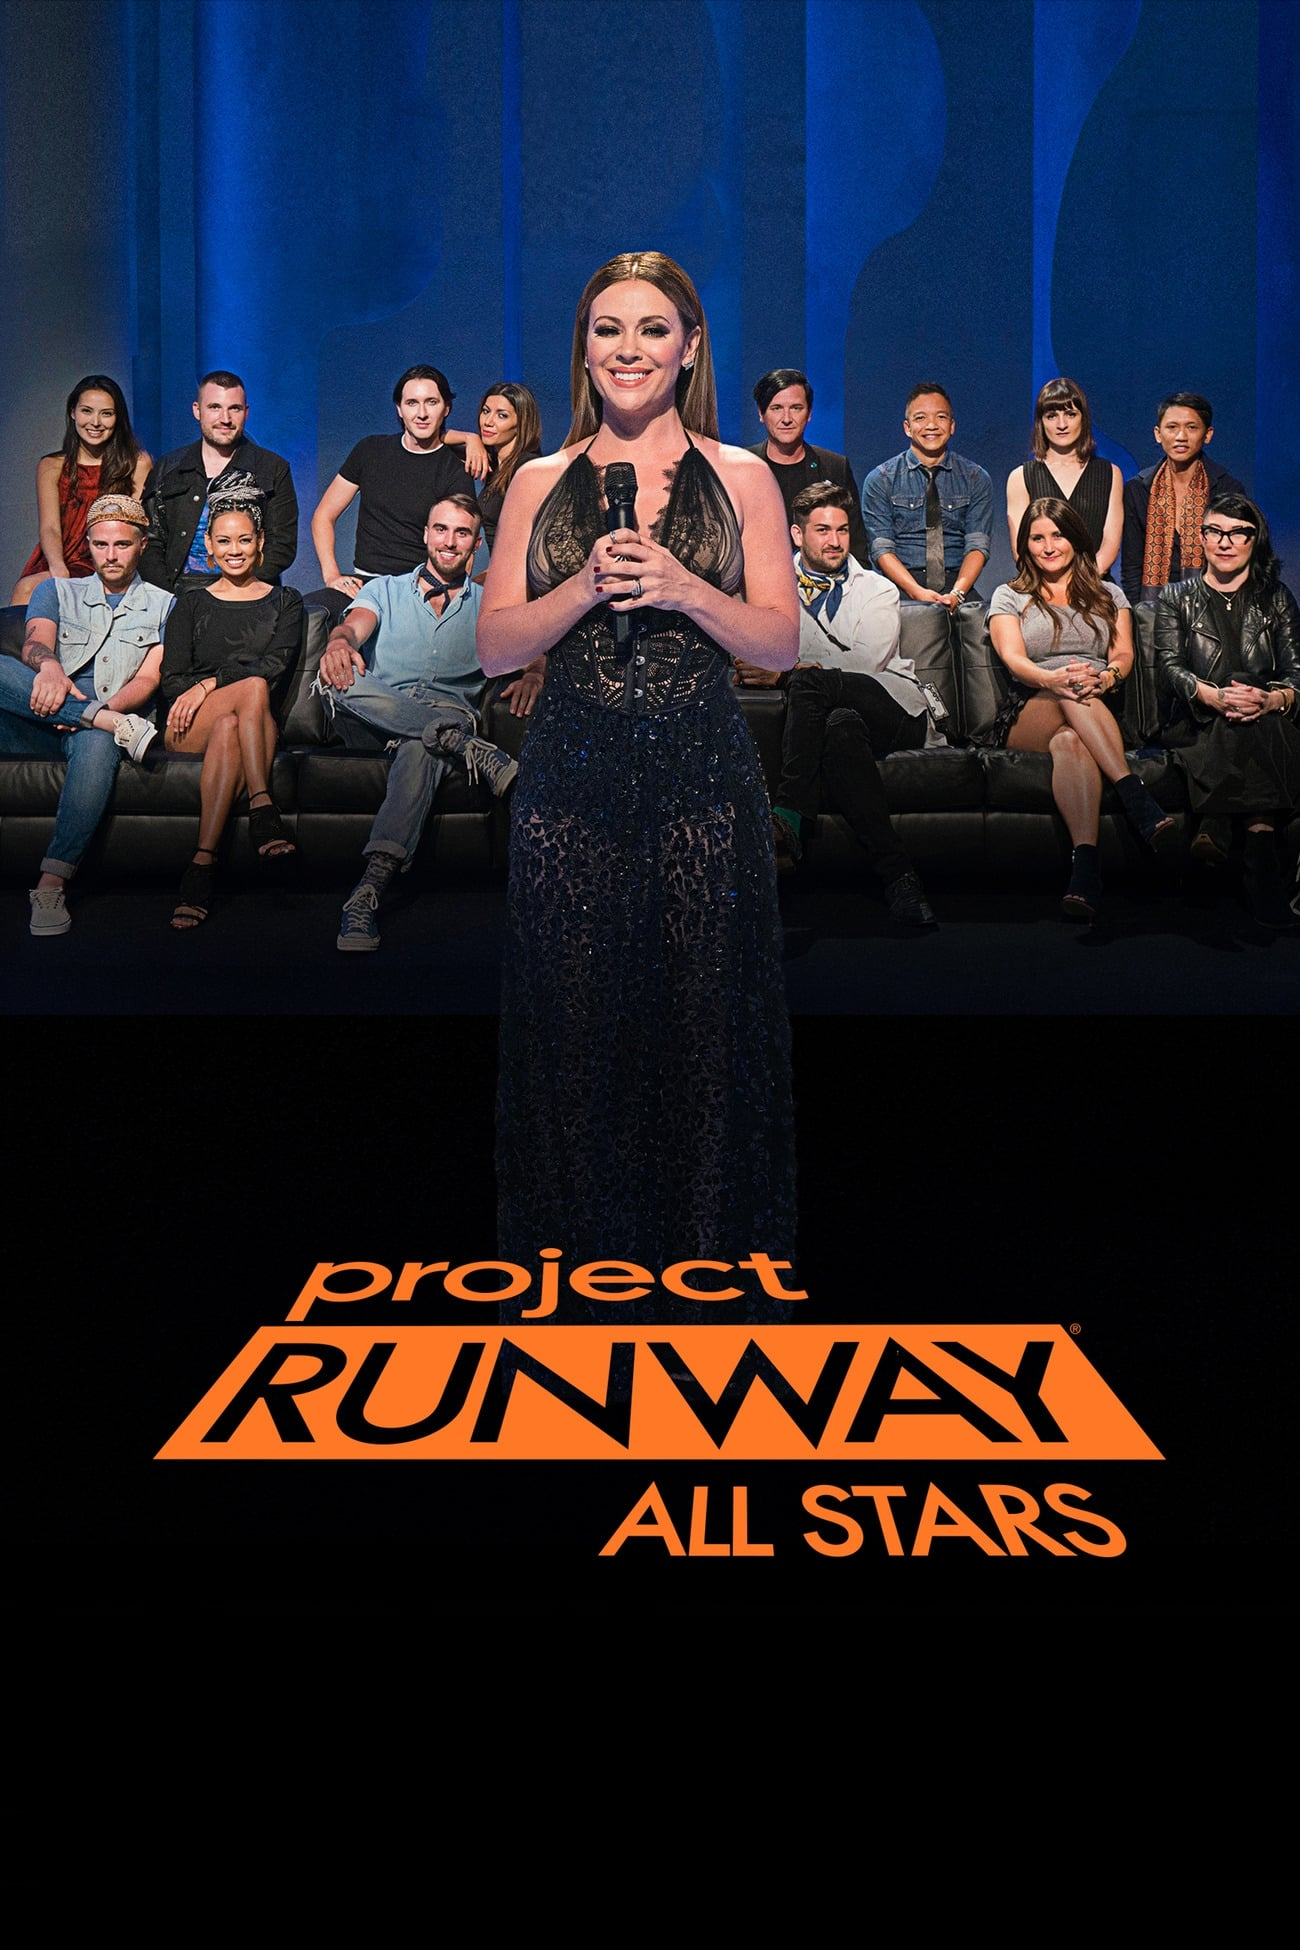 Project Runway All Stars (2012)